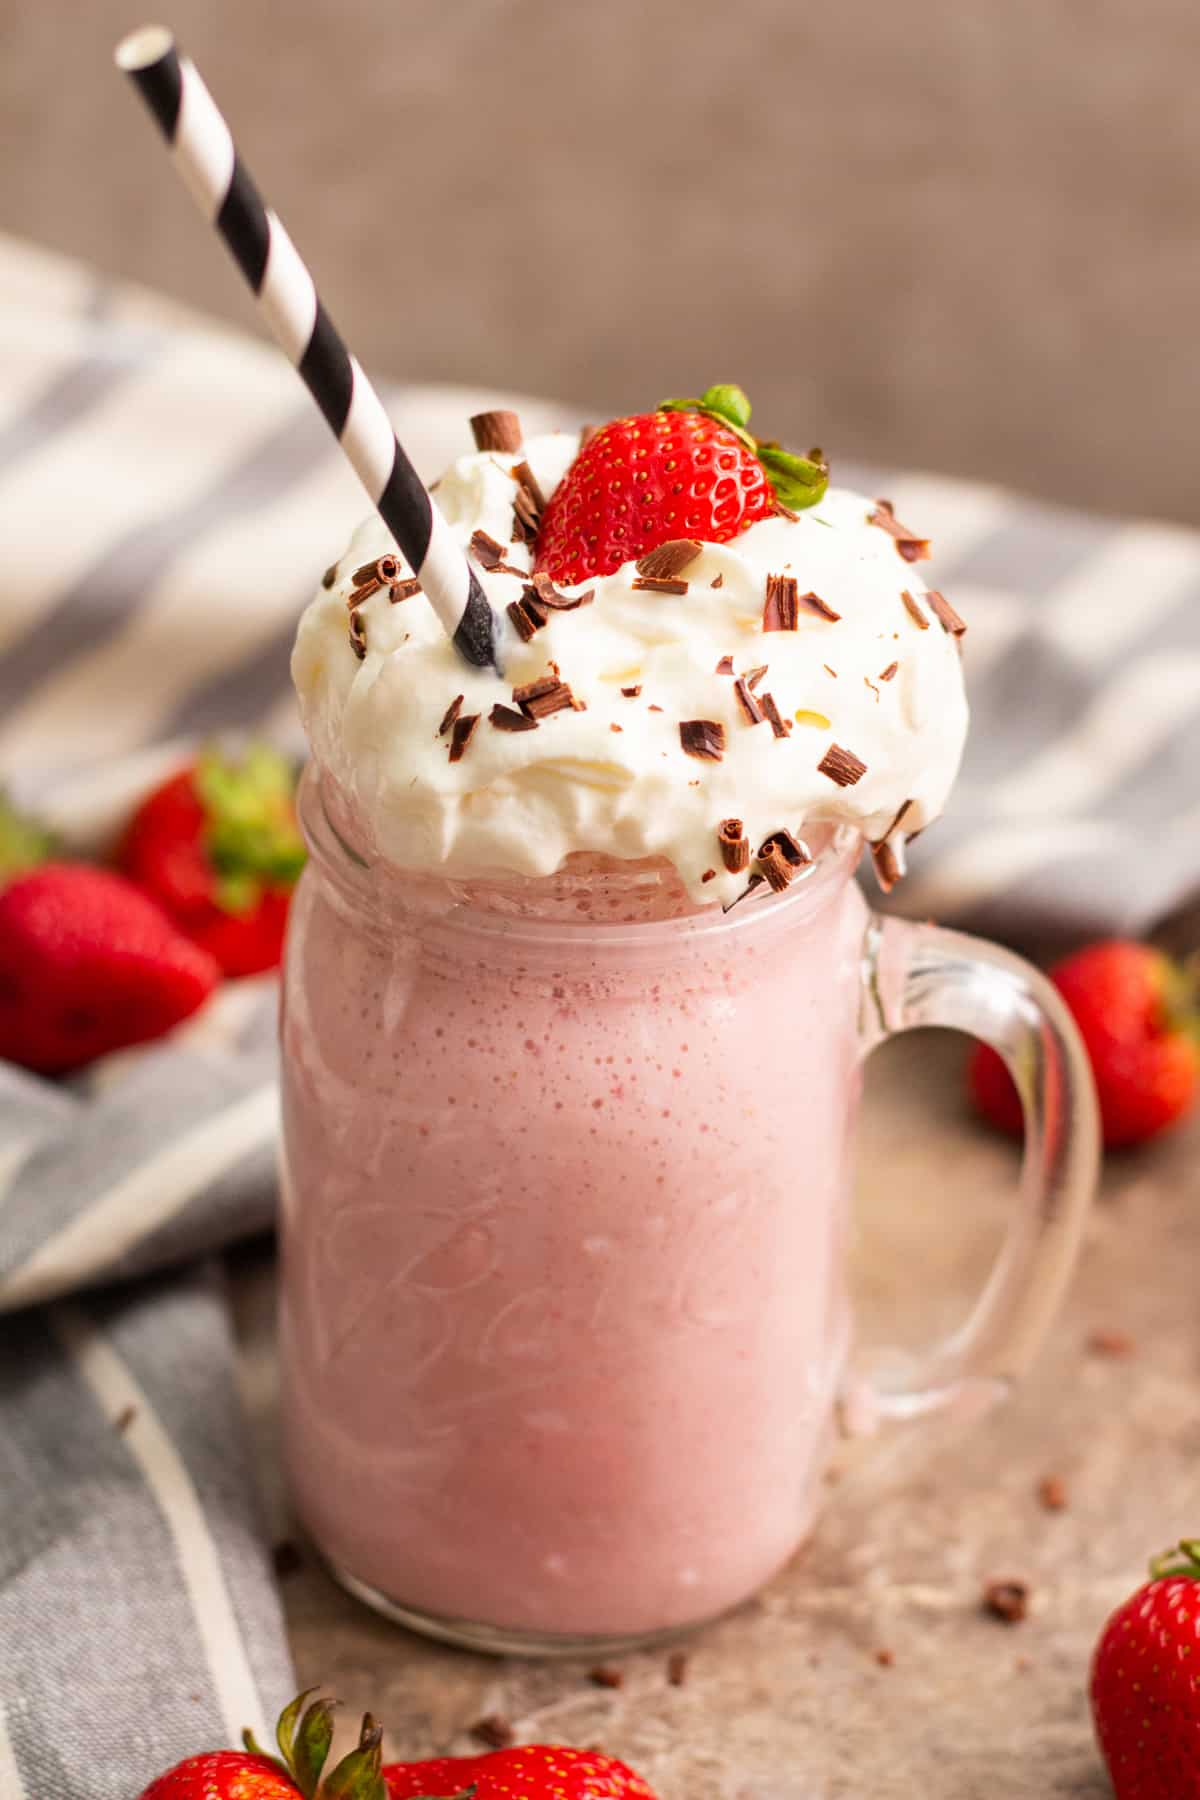 strawberry milkshake topped with whipped cream.